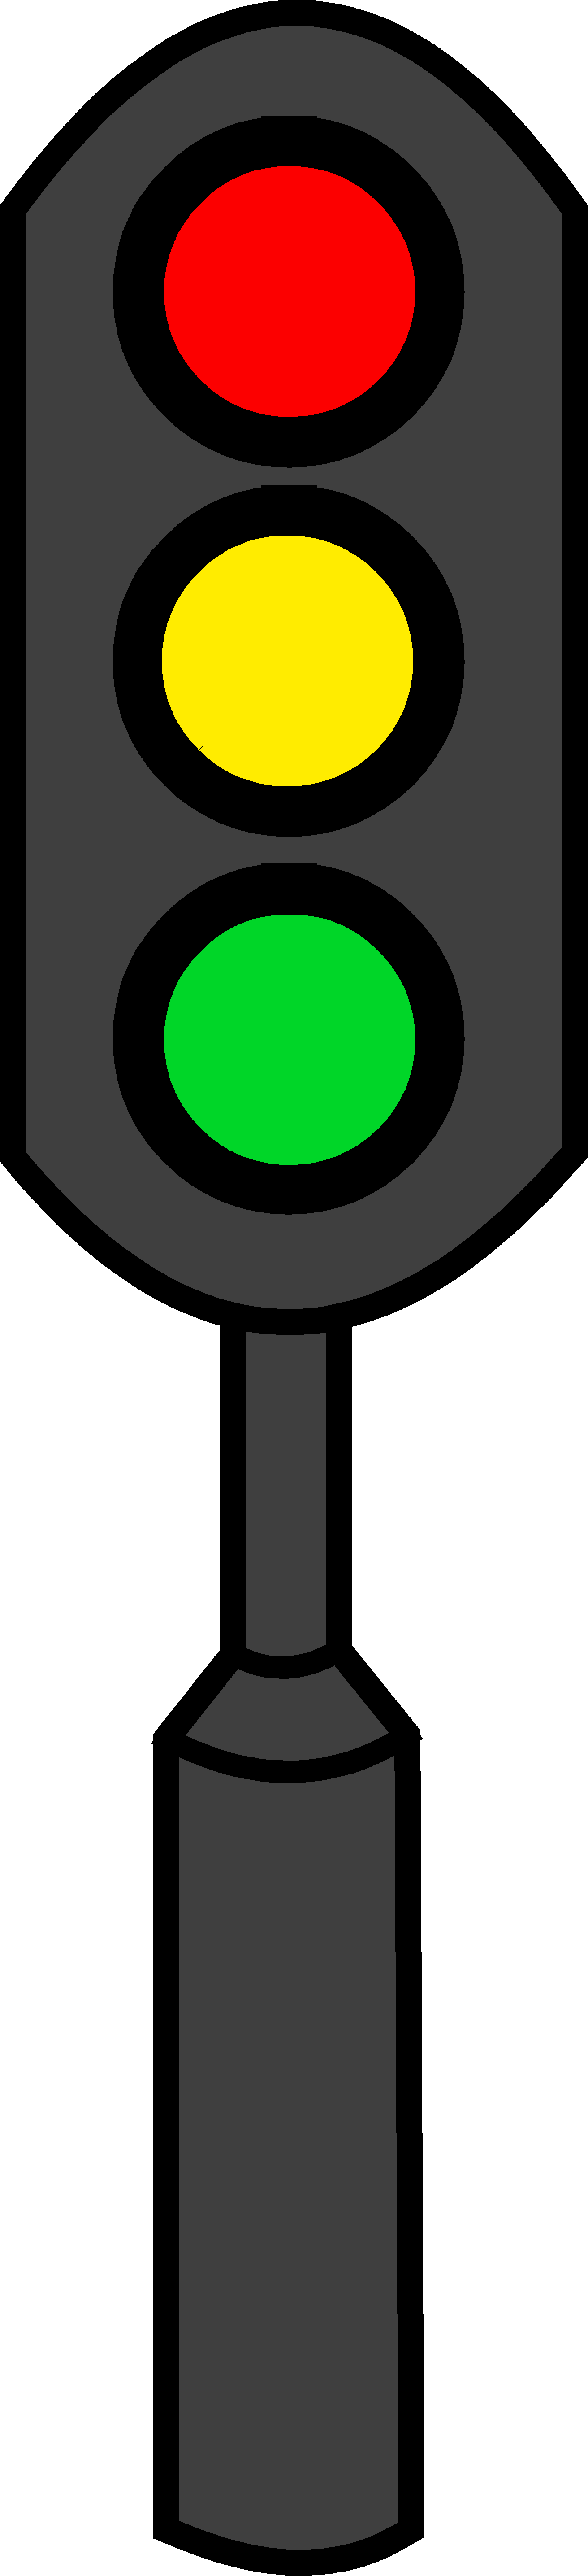 Traffic clipart transparent. Free stop light cartoon